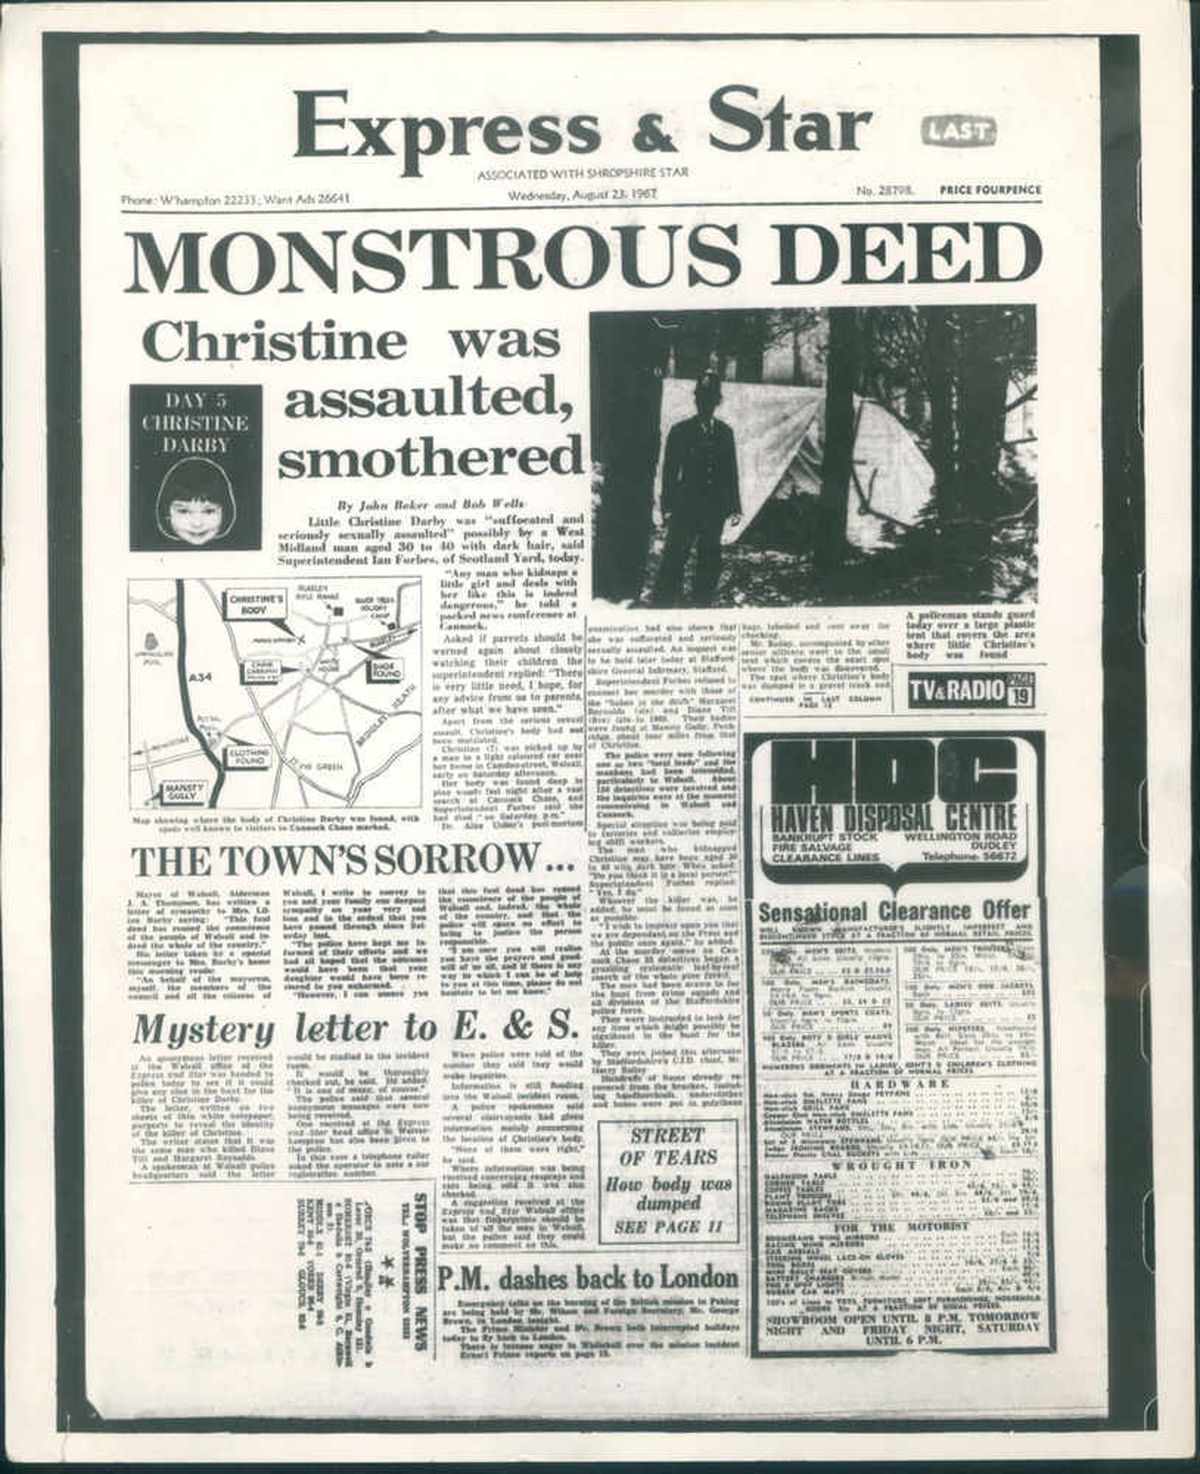 The Express & Star's front page on Raymond Morris in August 1967